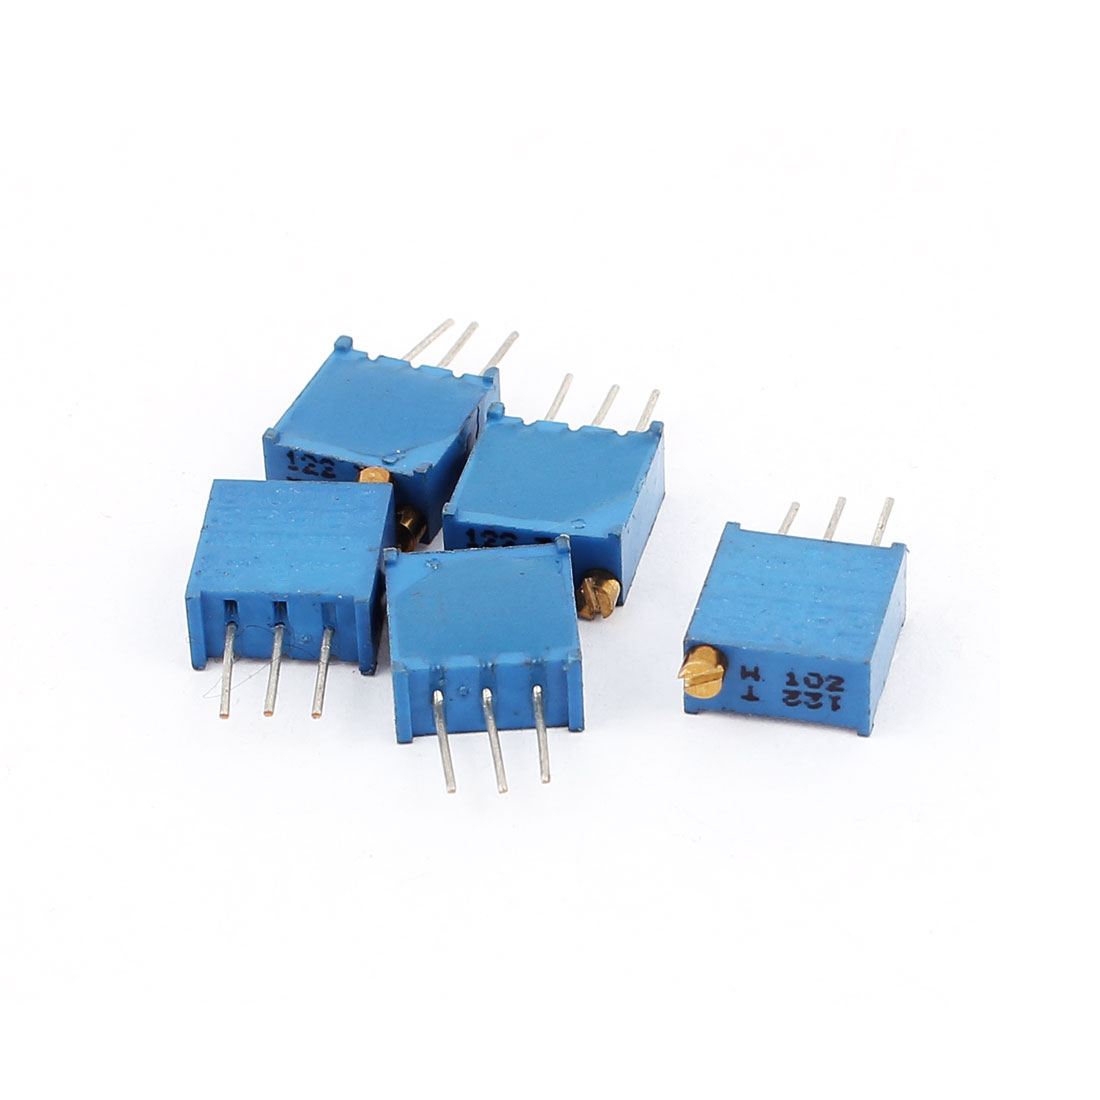 5 Pcs 3296W 1K ohm Variable Resistor Adjustable Resistance for Multiturn Potentiometer